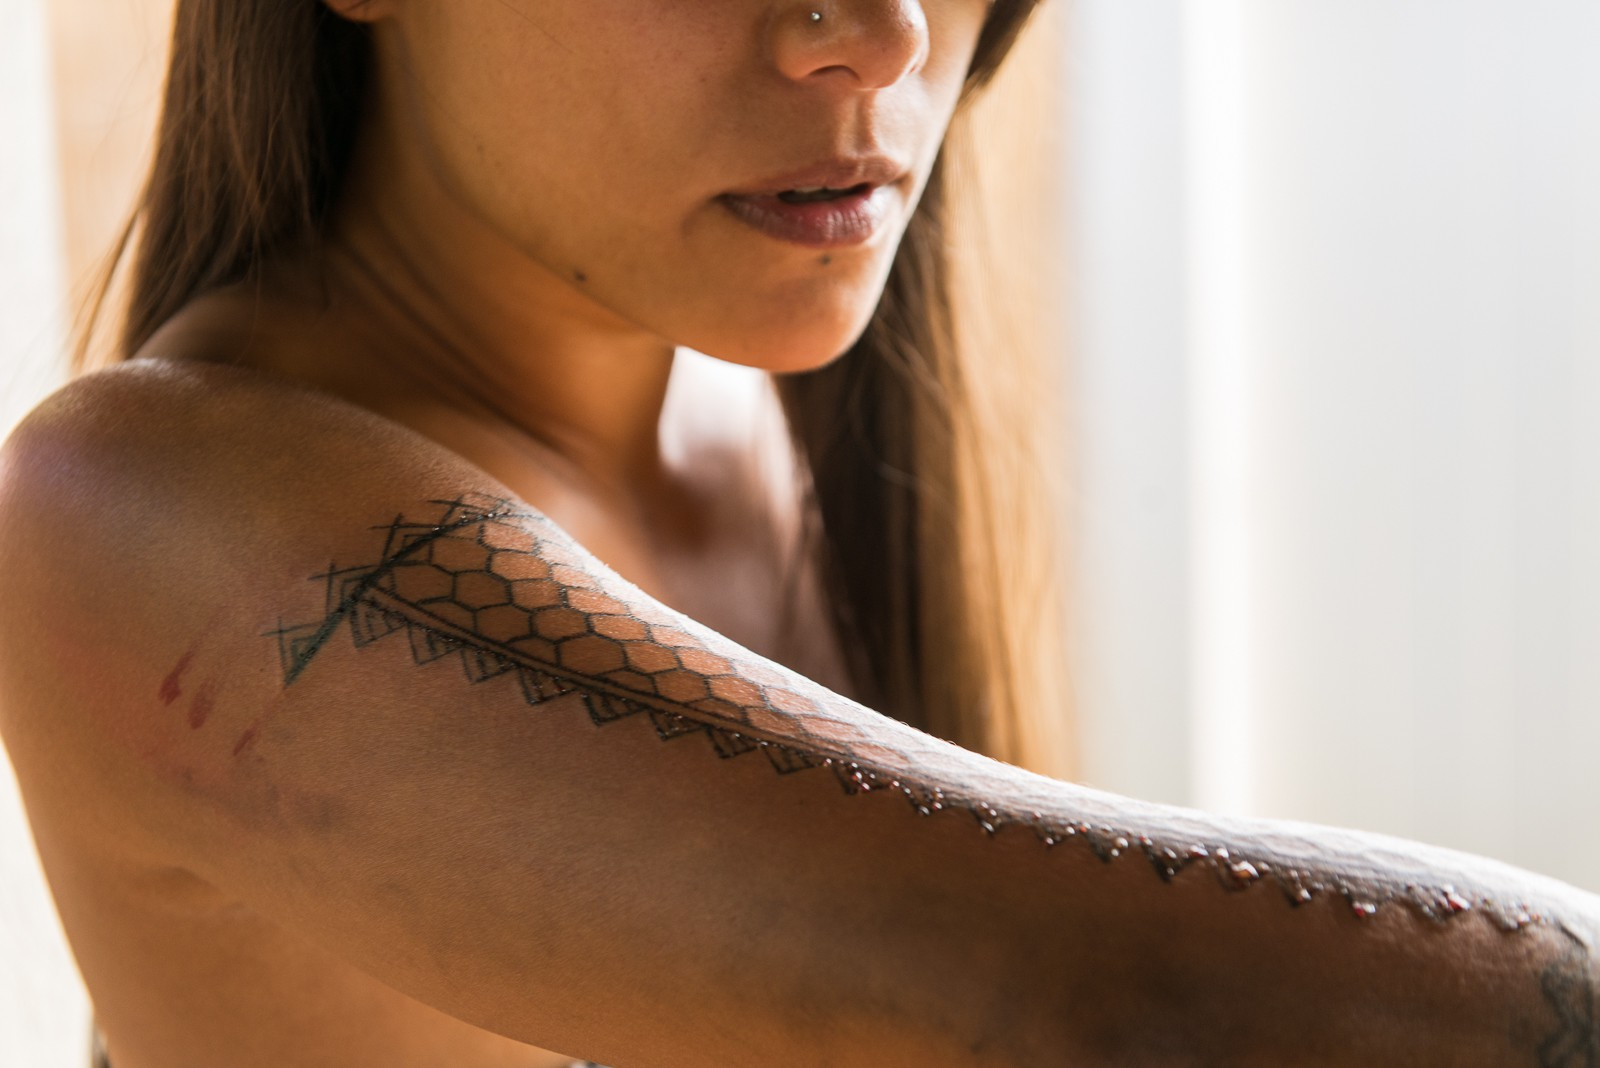 Evolutions In Ink Keone Nunes And The Art Of Indigenous Tattooing